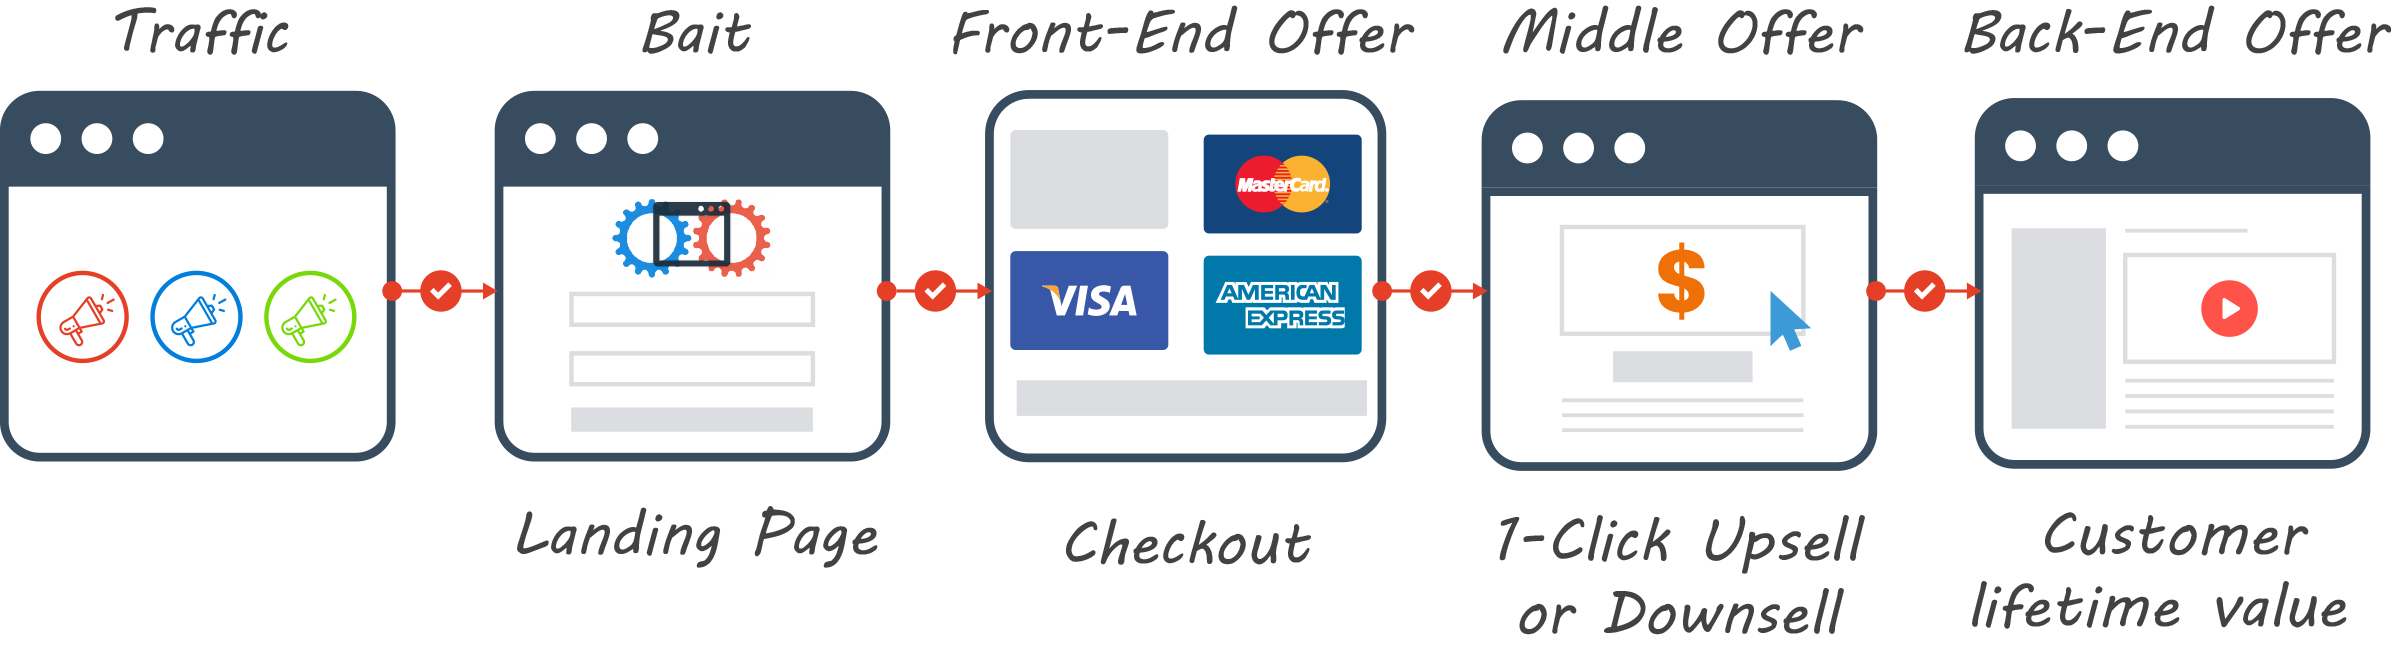 How To Create Coupons On Clickfunnels